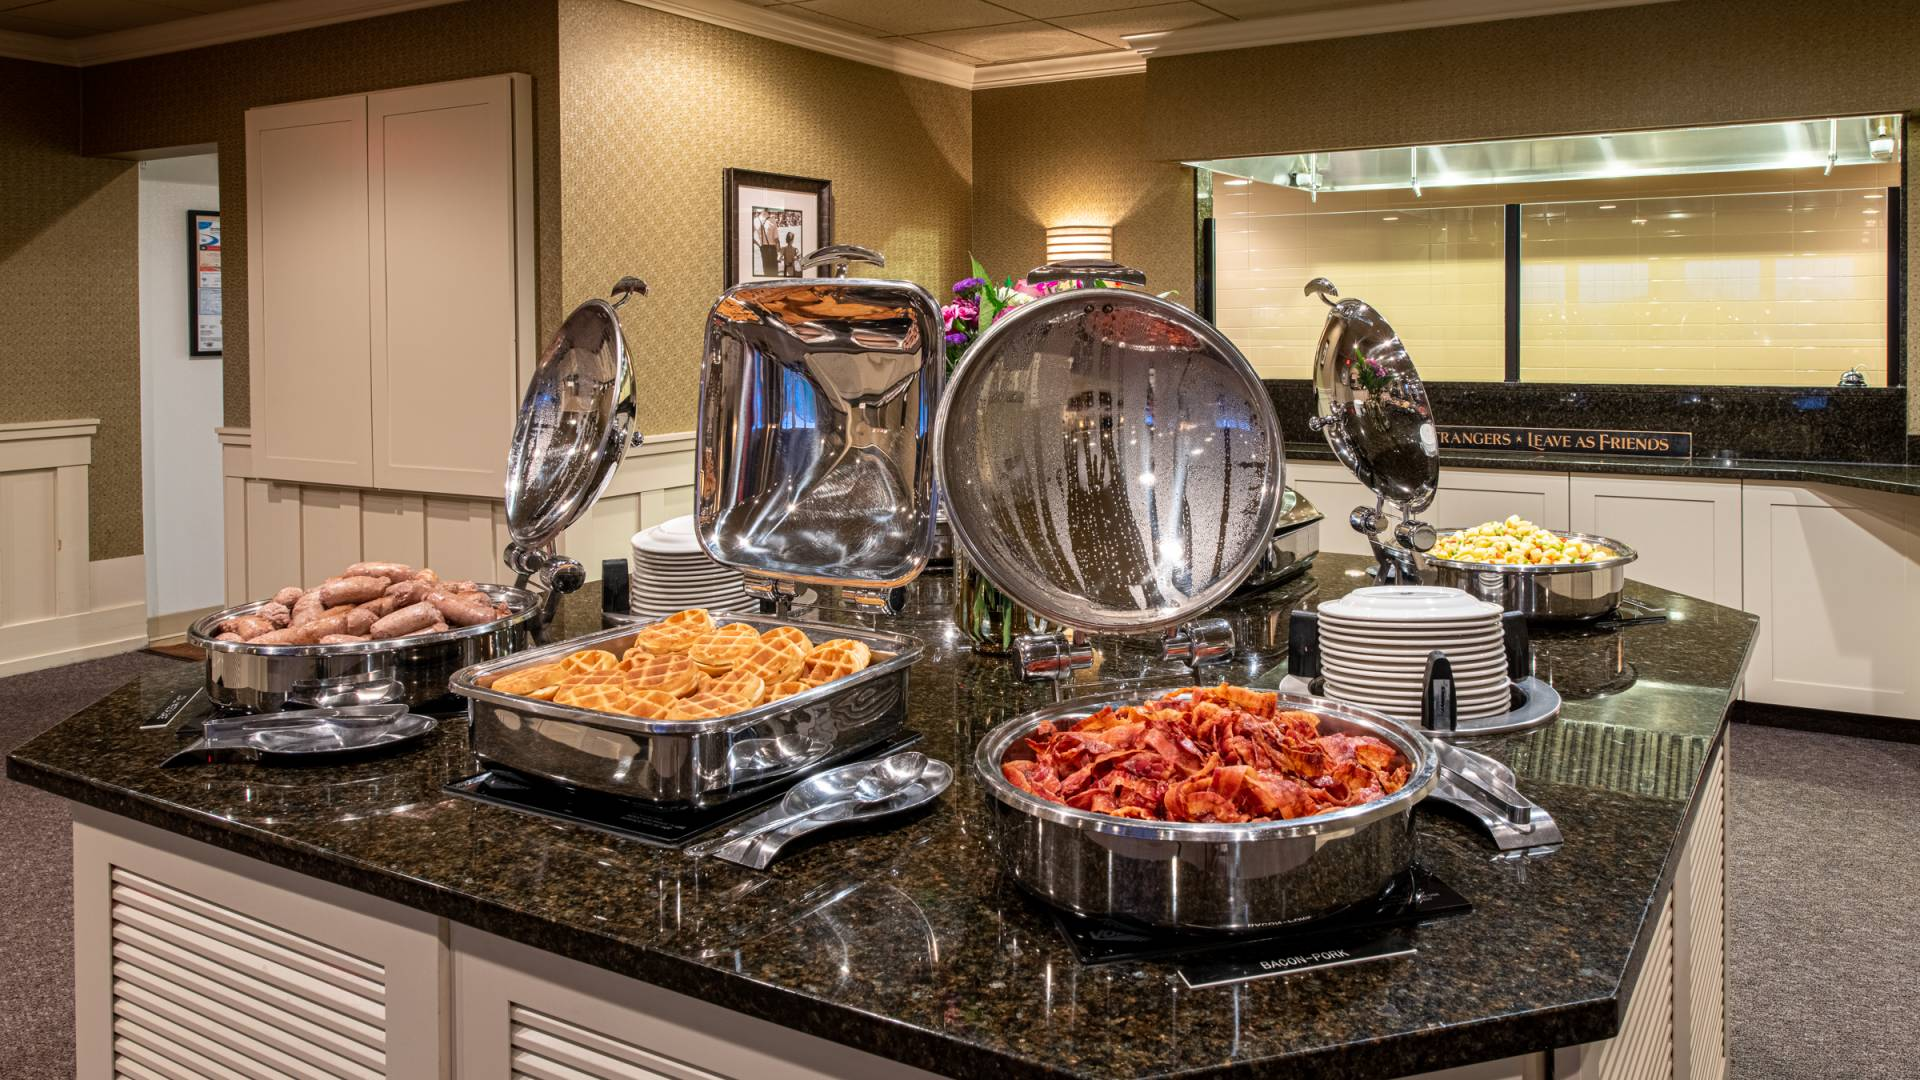 complimentary breakfast buffet with sausage links, waffles, bacon, eggs and more setup